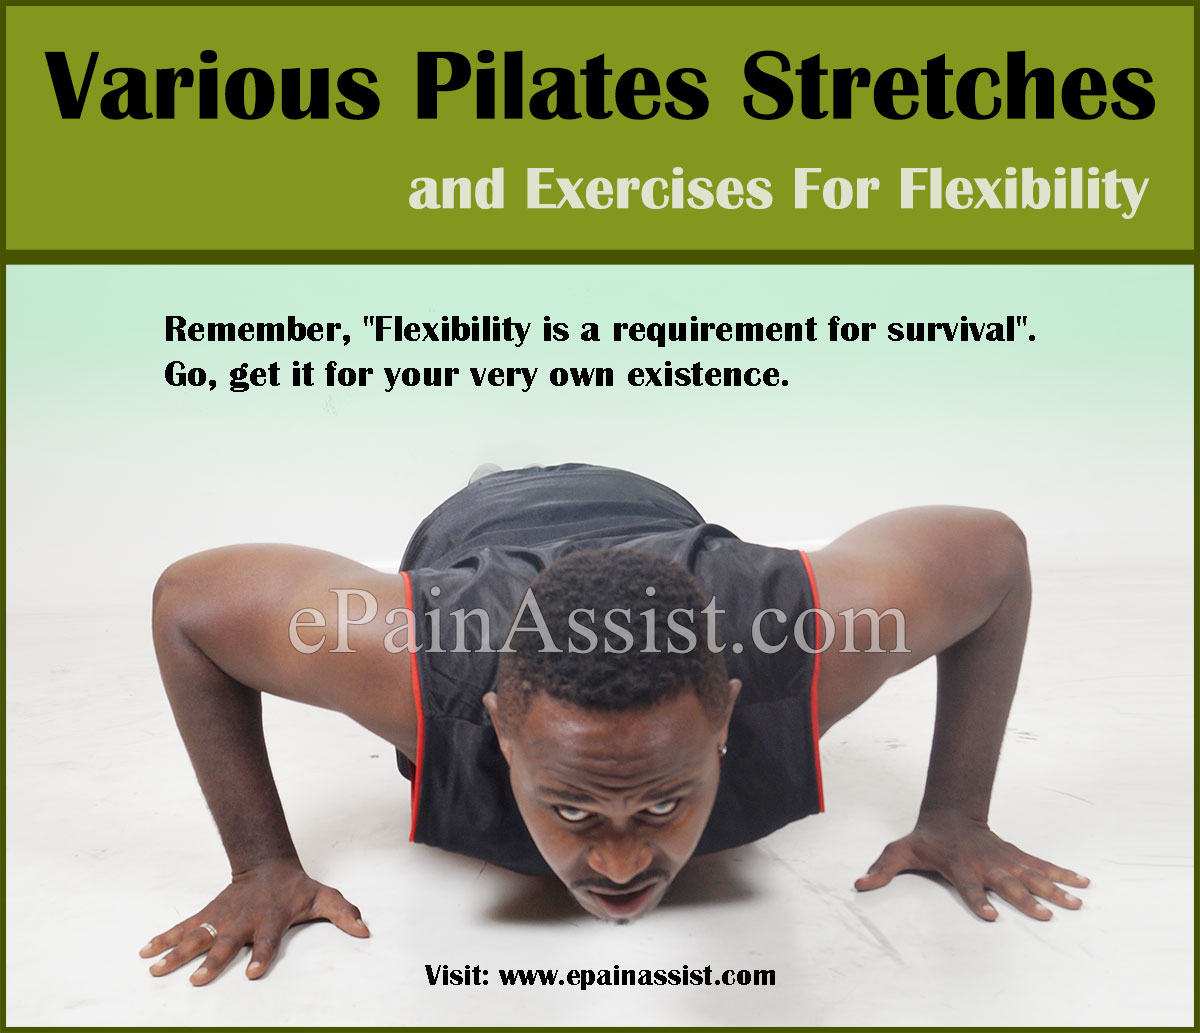 Various Pilates Stretches and Exercises For Flexibility